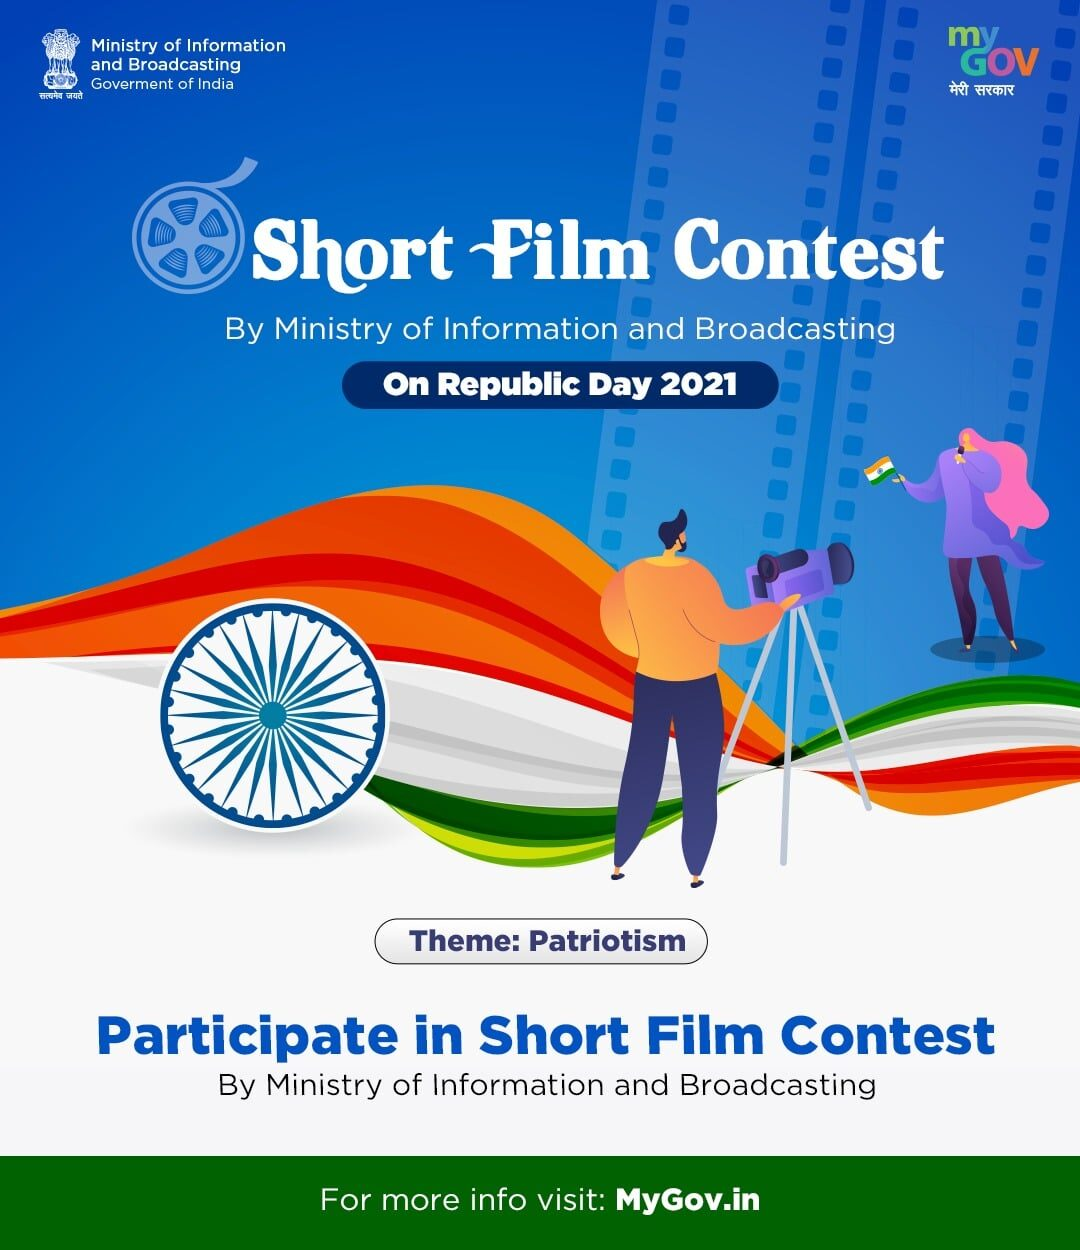 Short Film Contest by Ministry of Information and Broadcasting